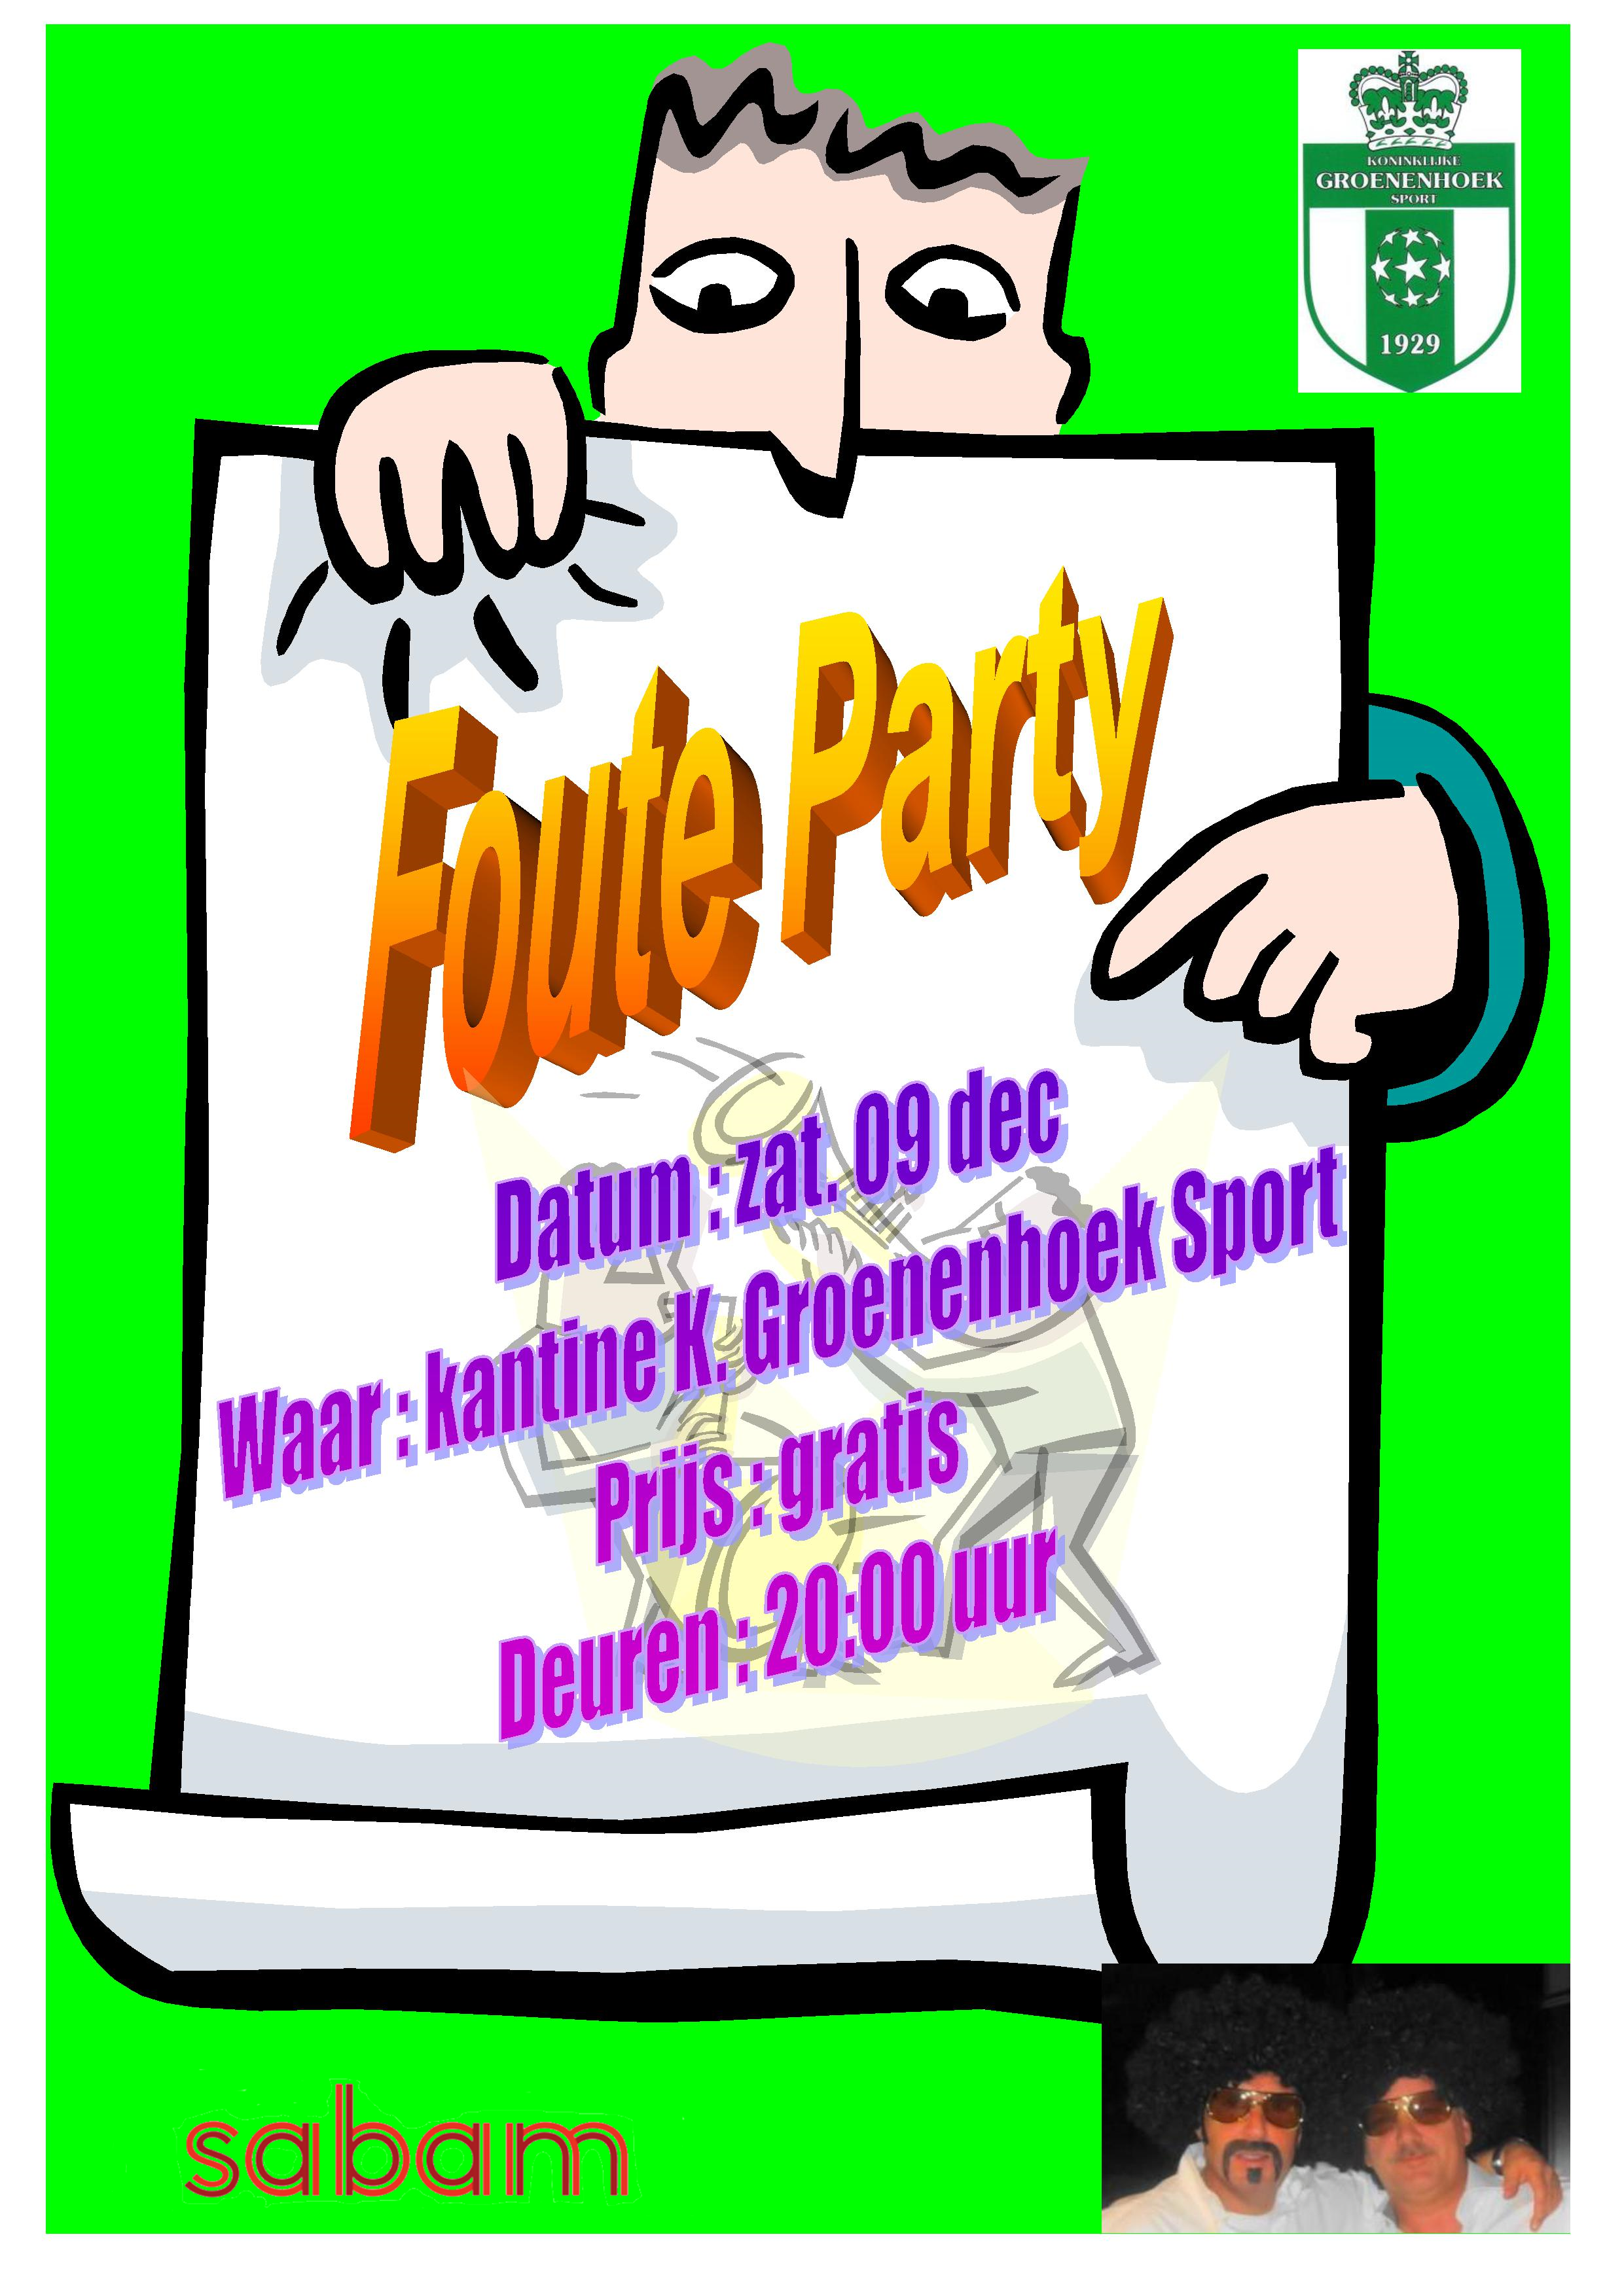 Foute party 2.png